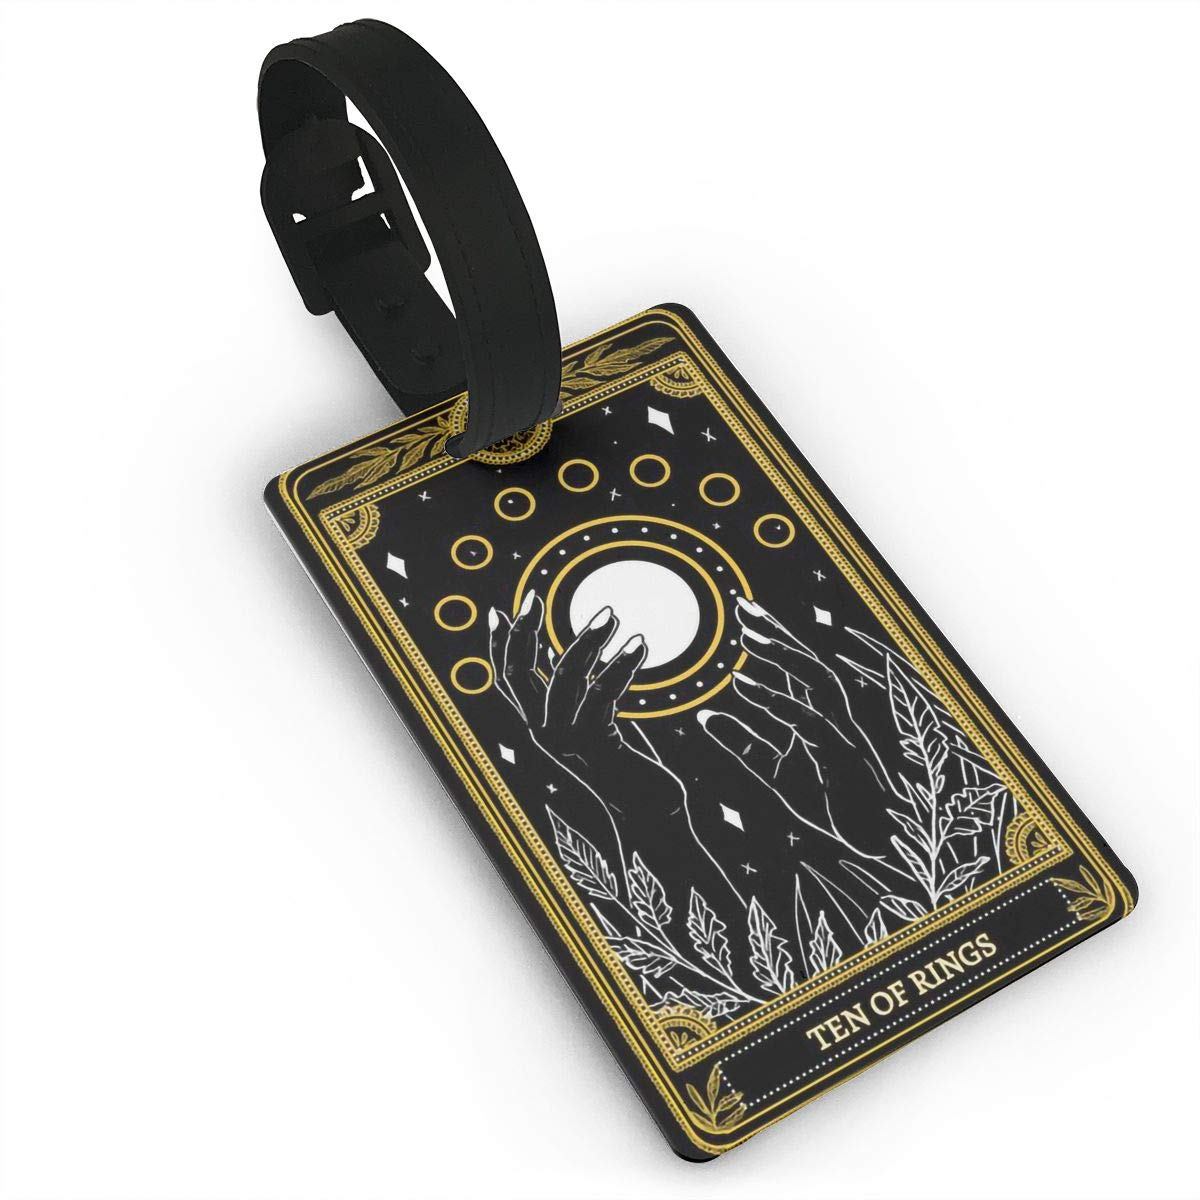 2 Pack Luggage Tags Tarot Cards Ten Of Rings Cruise Luggage Tag For Suitcase Bag Accessories